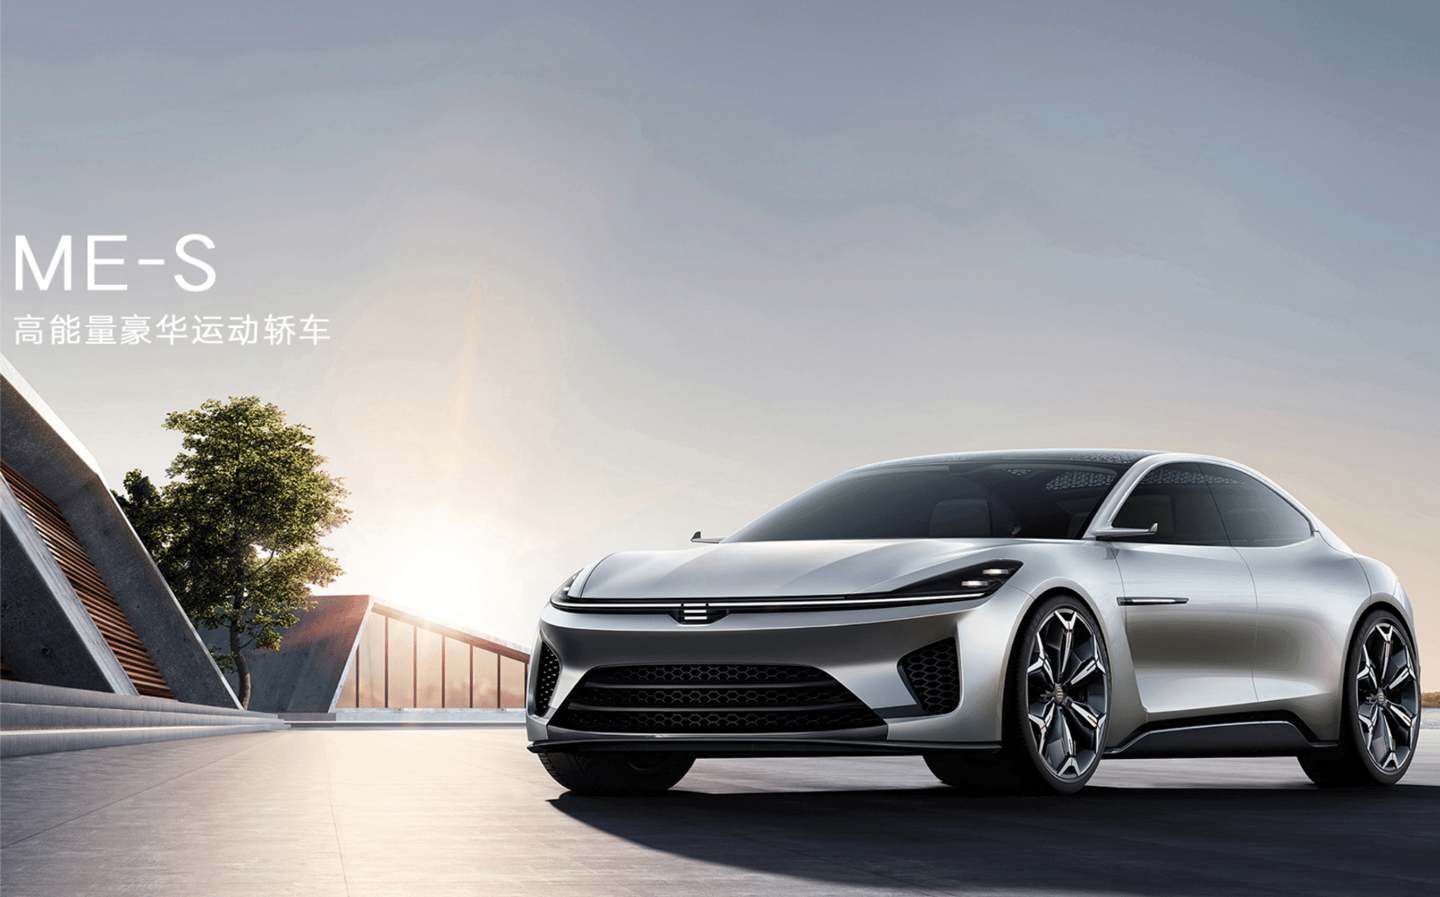 Solid state battery technology is projected to lead to safer, more energy-dense electric powertrains - and Enovate says it can launch a solid state sports car by 2021